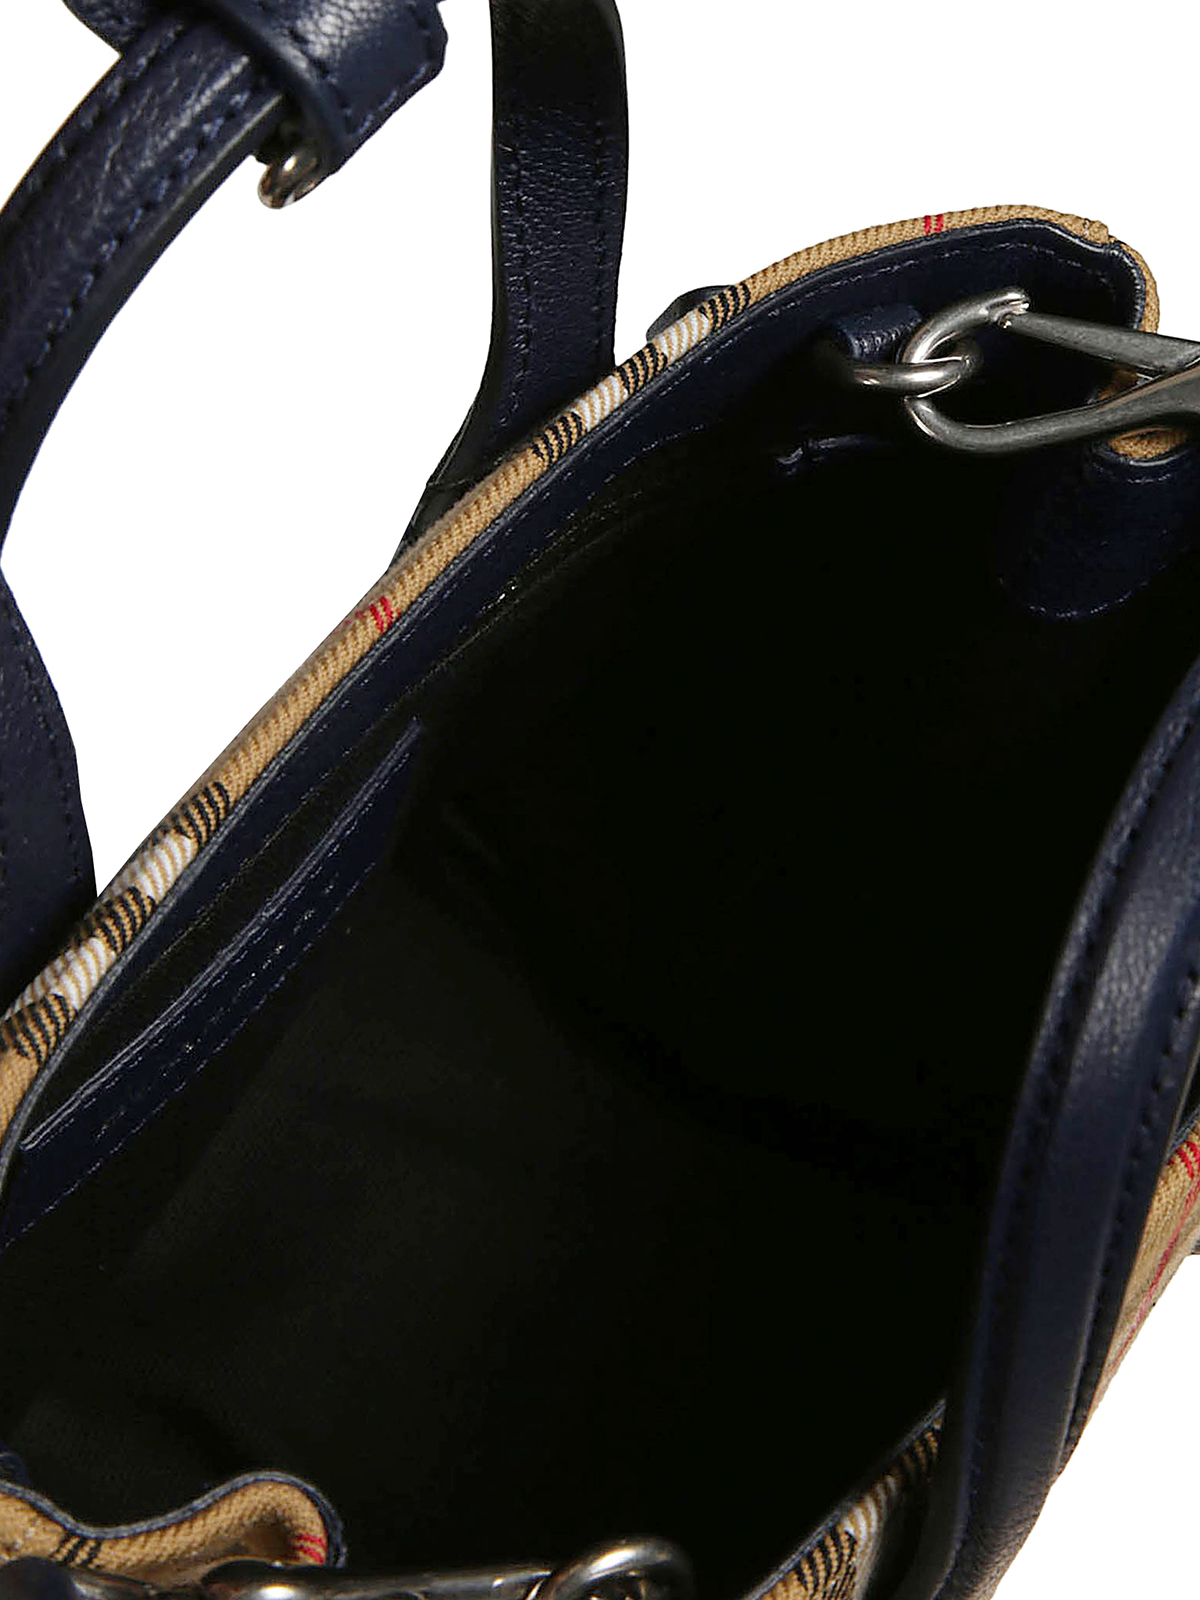 ec15fb489779 BURBERRY buy online Vintage Check and leather Baby Banner bag. BURBERRY  cross  body bags ...